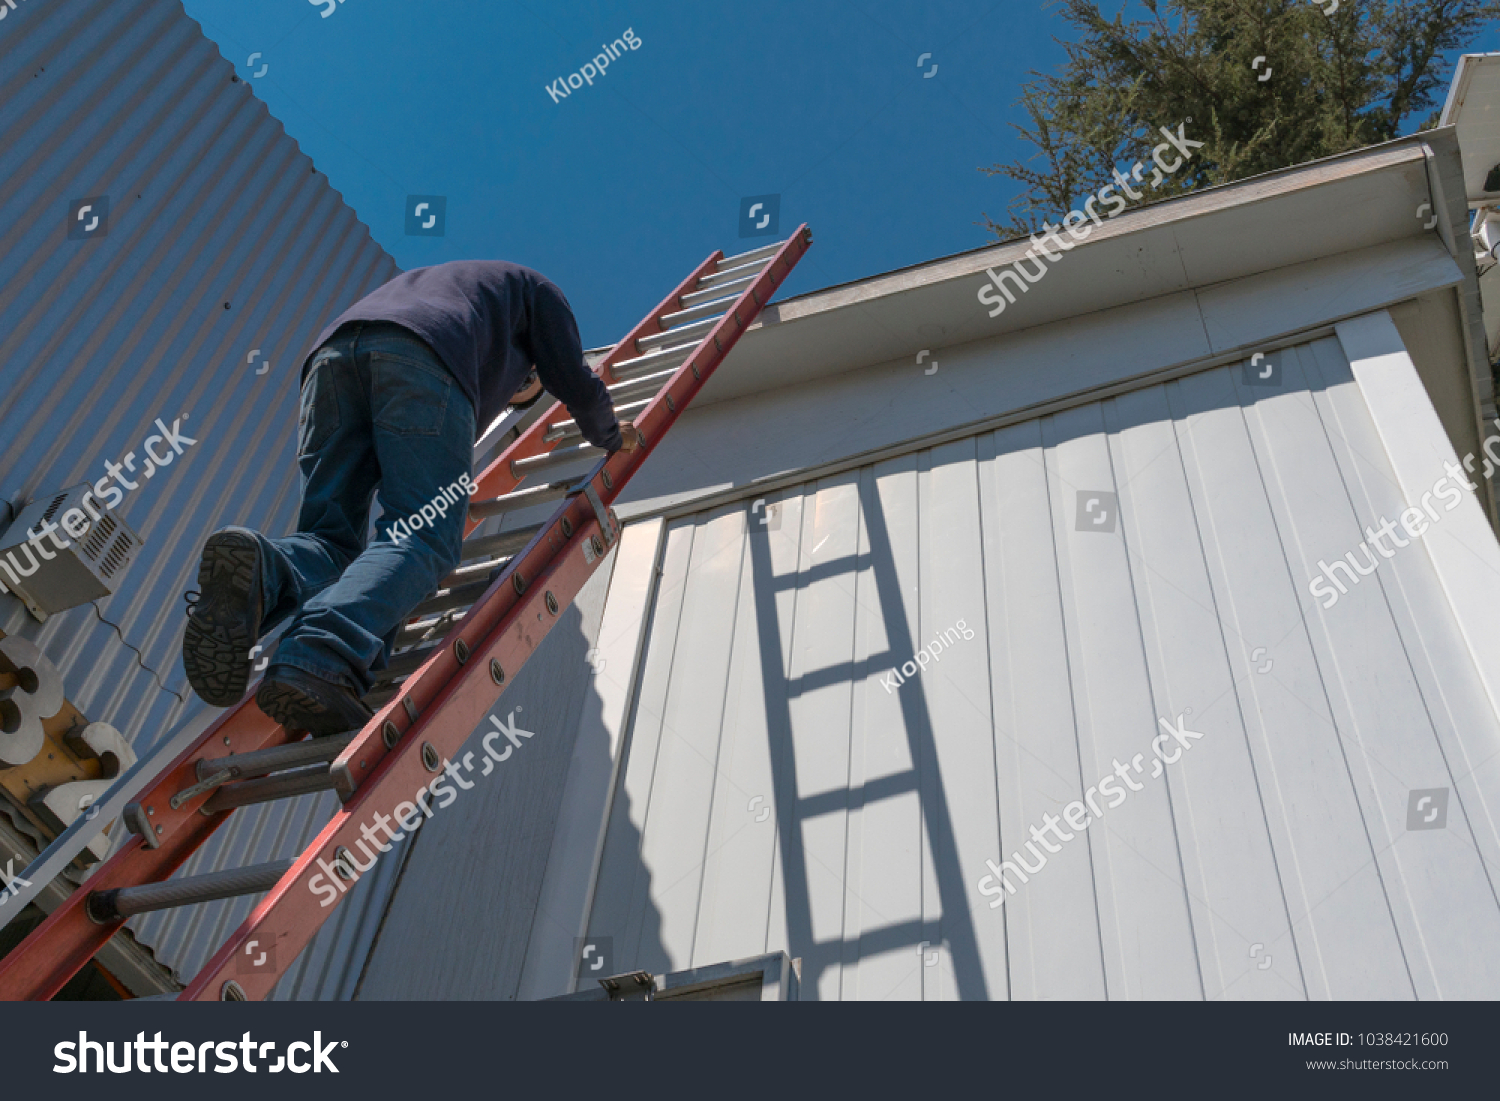 Climbing the risks of a worker by ladder to work on the roof of a house on a beautiful sunny day. #1038421600